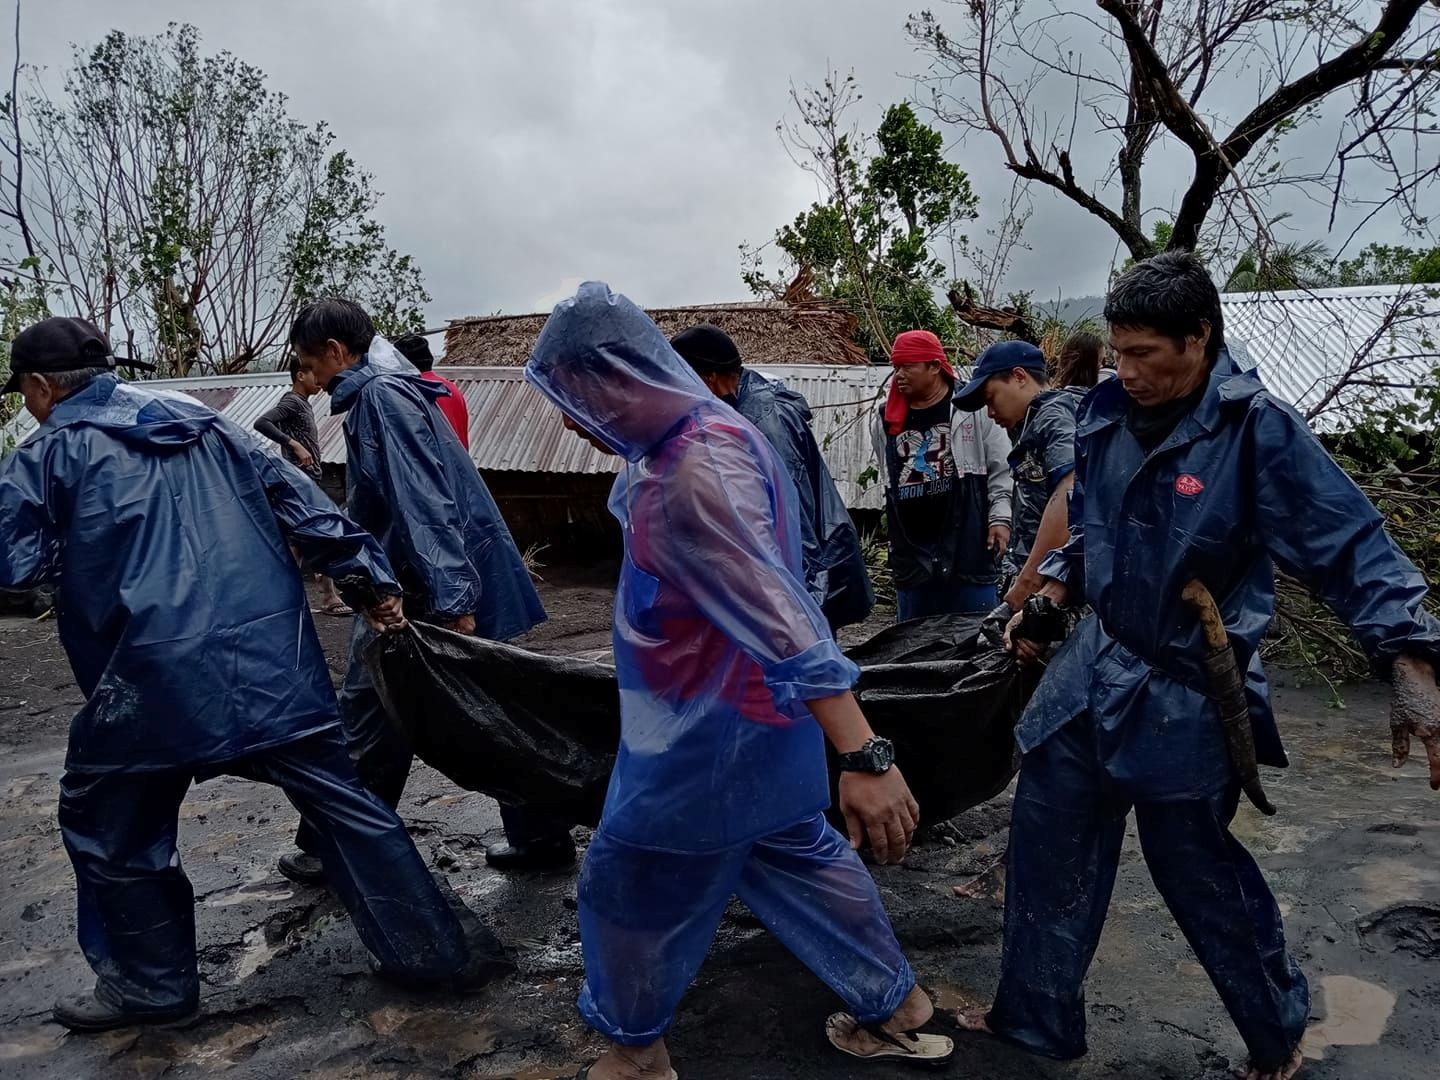 People carry the body of a victim in the aftermath of Typhoon Goni in San Francisco, Guinobatan, Albay province, Philippines November 1, 2020. Photo: Shyneth Occidental Montero via Reuters